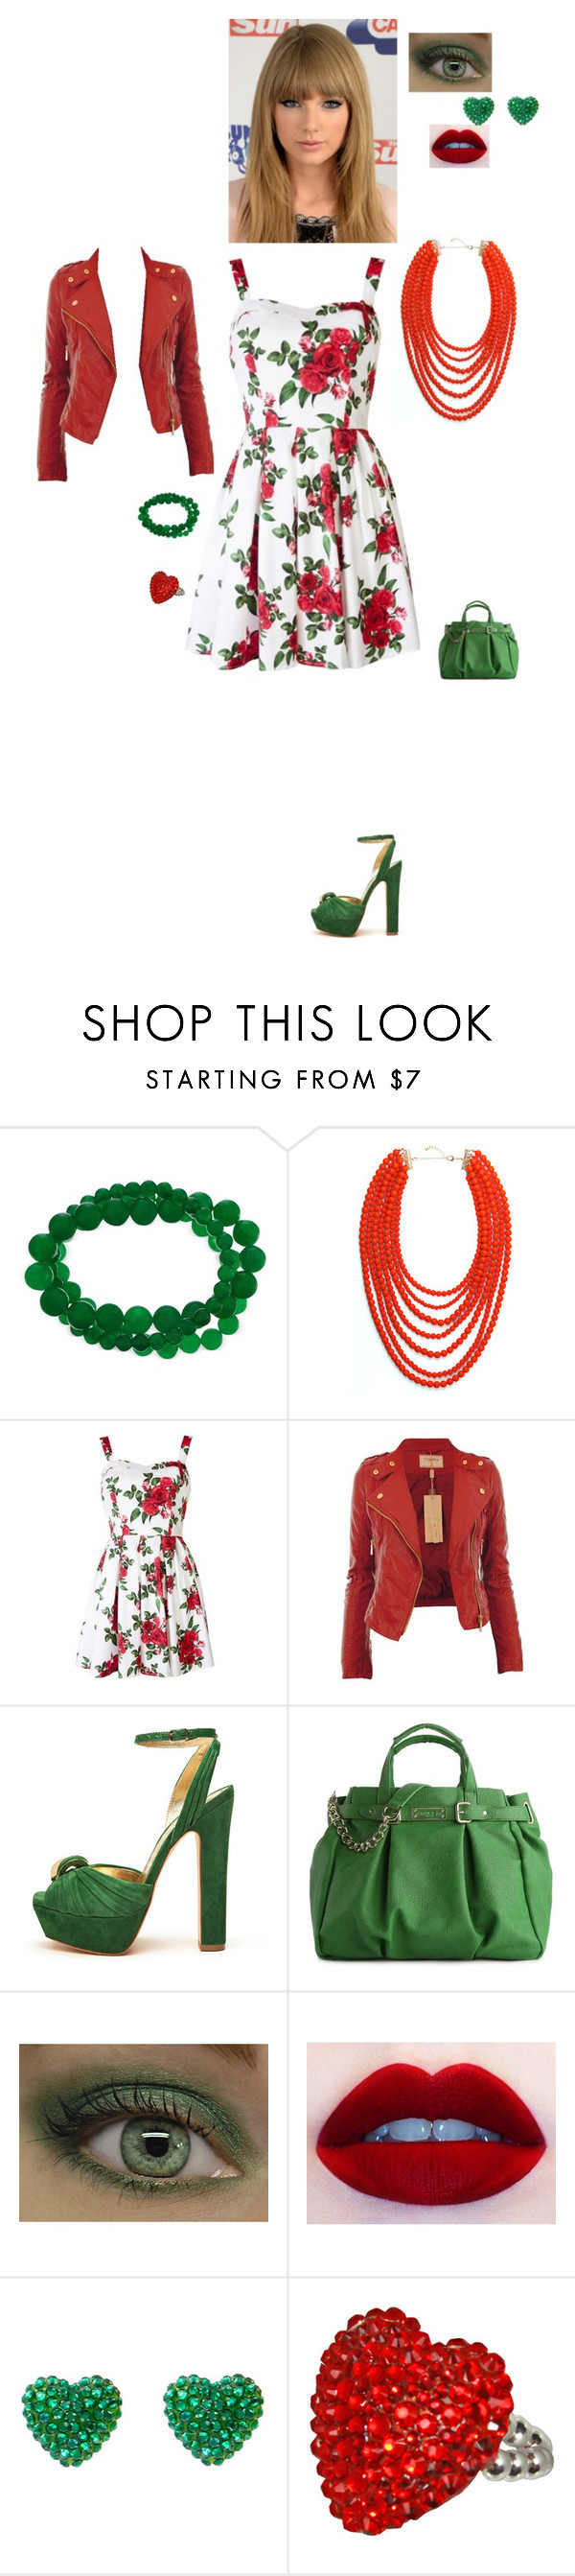 """Fun day out"" by astar92011 ❤ liked on Polyvore featuring BaubleBar, Hell Bunny, Mimco, Olivia + Joy, Lime Crime and Tarina Tarantino"